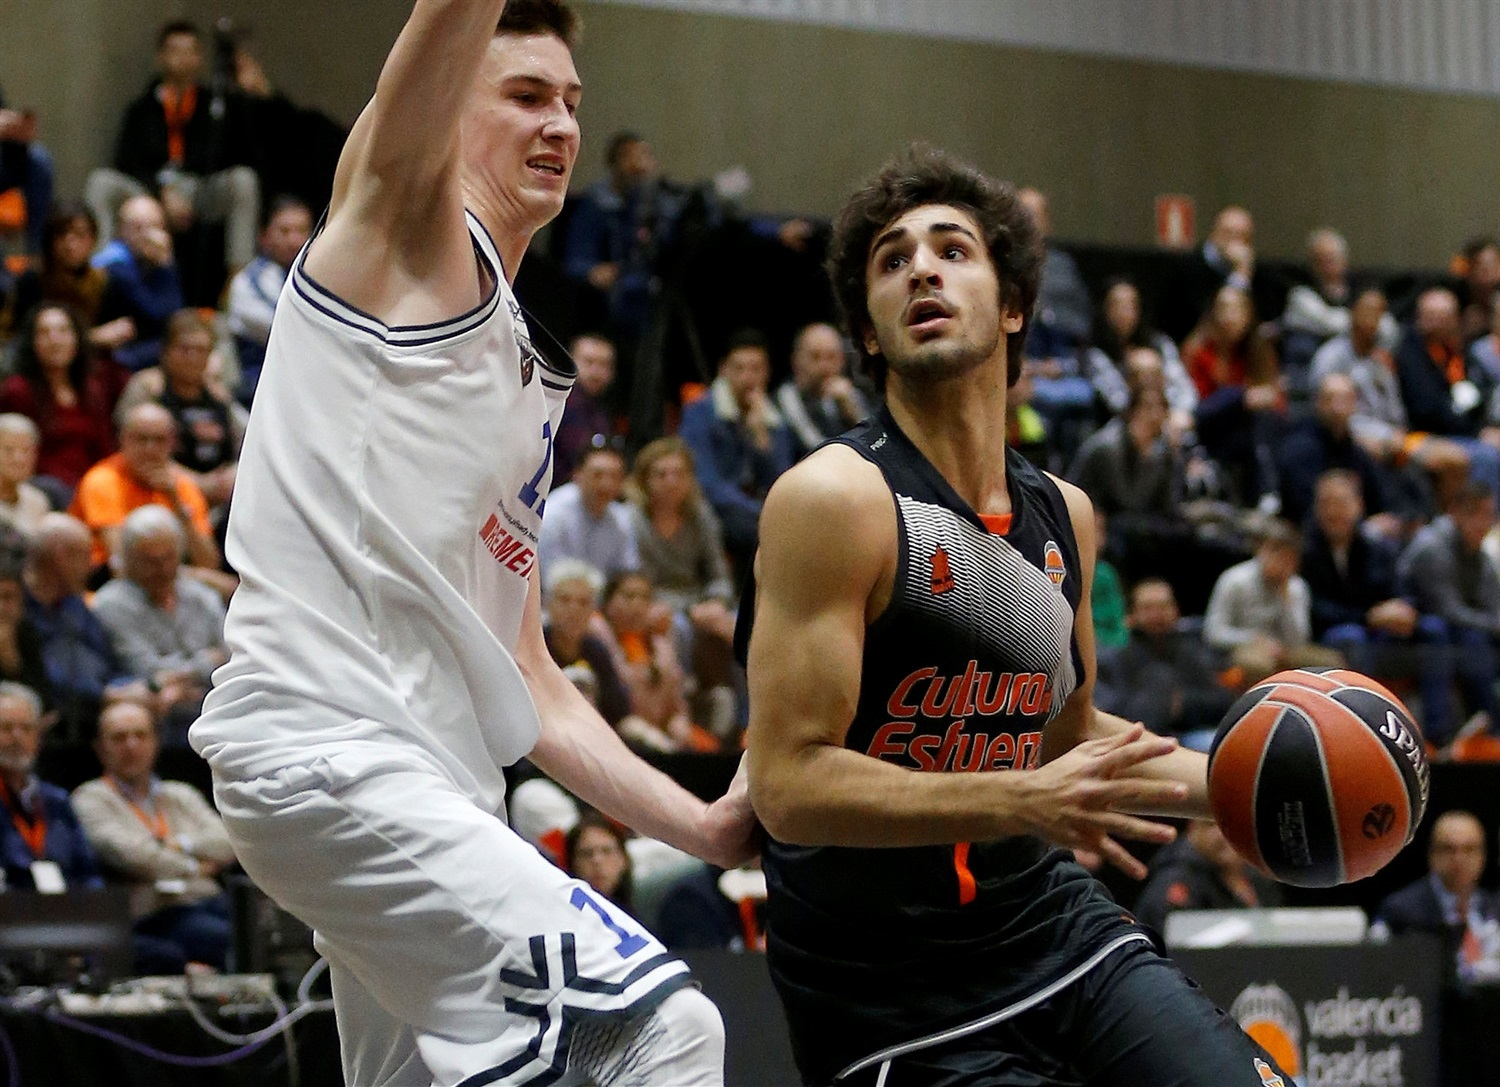 Daniel Perez - U18 Valencia Basket (photo Miguel Angel Polo - Valencia) - JT18